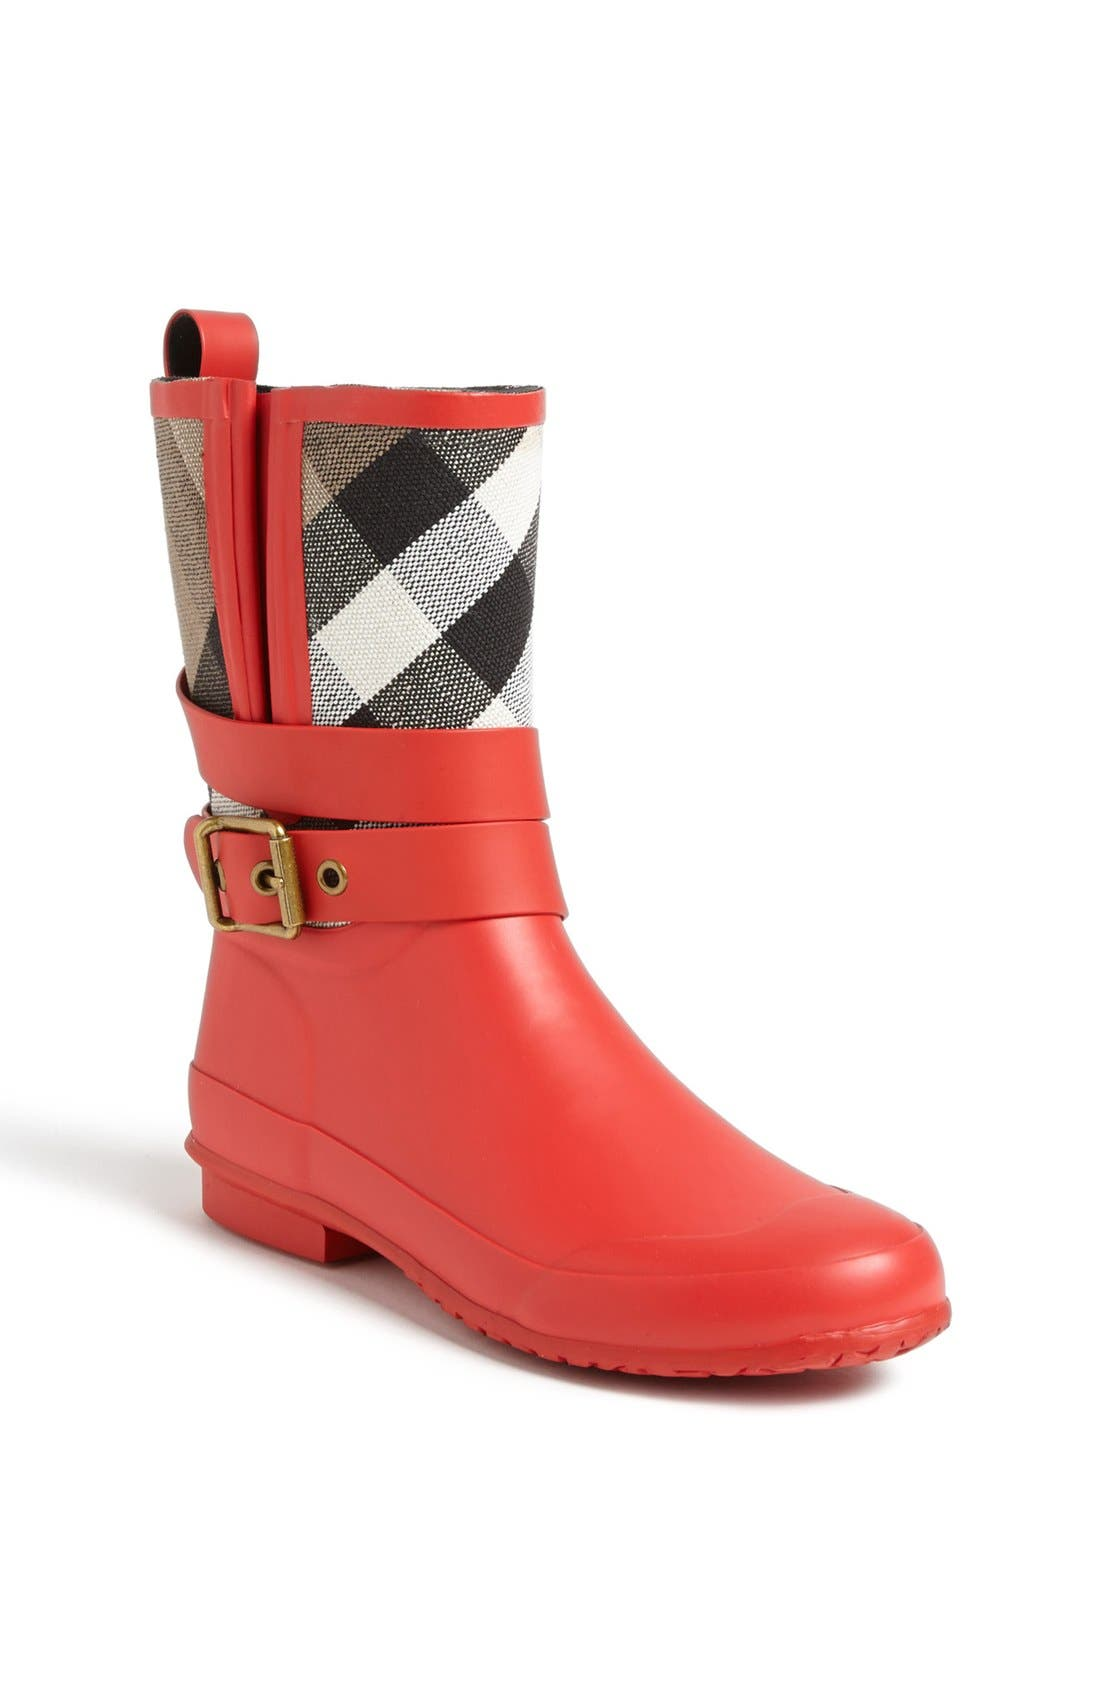 Alternate Image 1 Selected - Burberry 'Holloway' Rain Boot (Women)